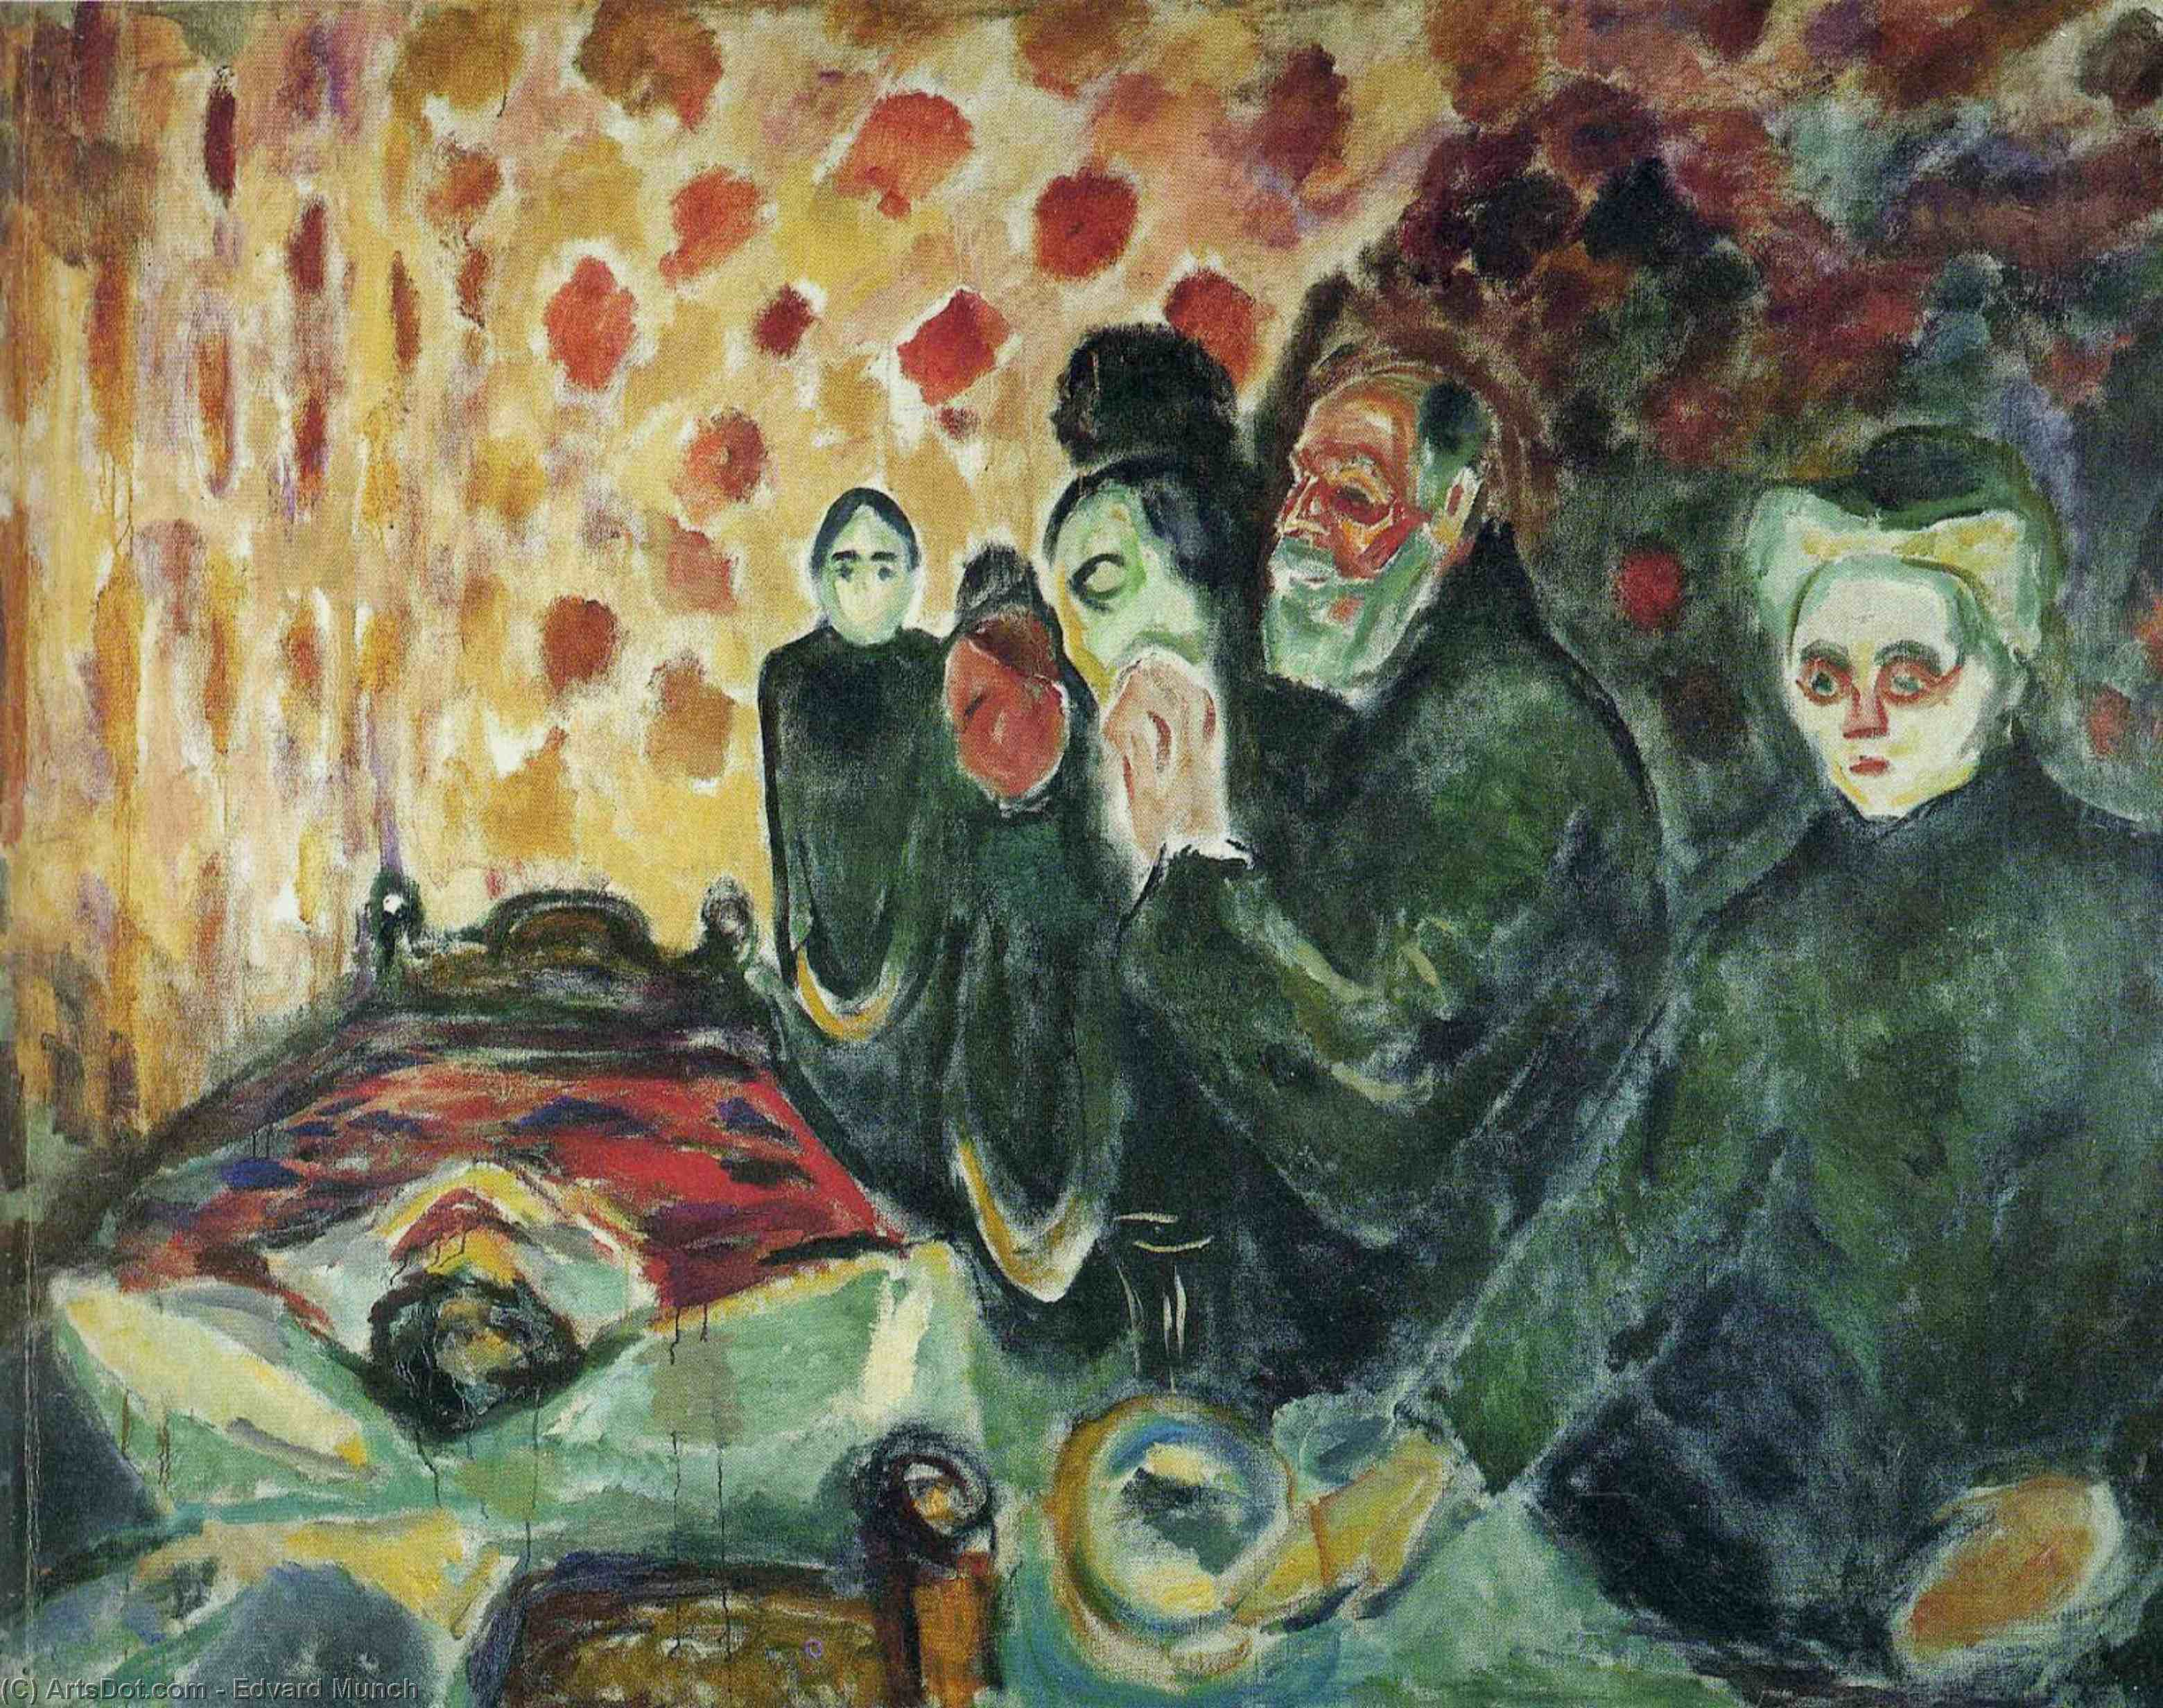 Near the bed of death (fever) - Edvard Munch